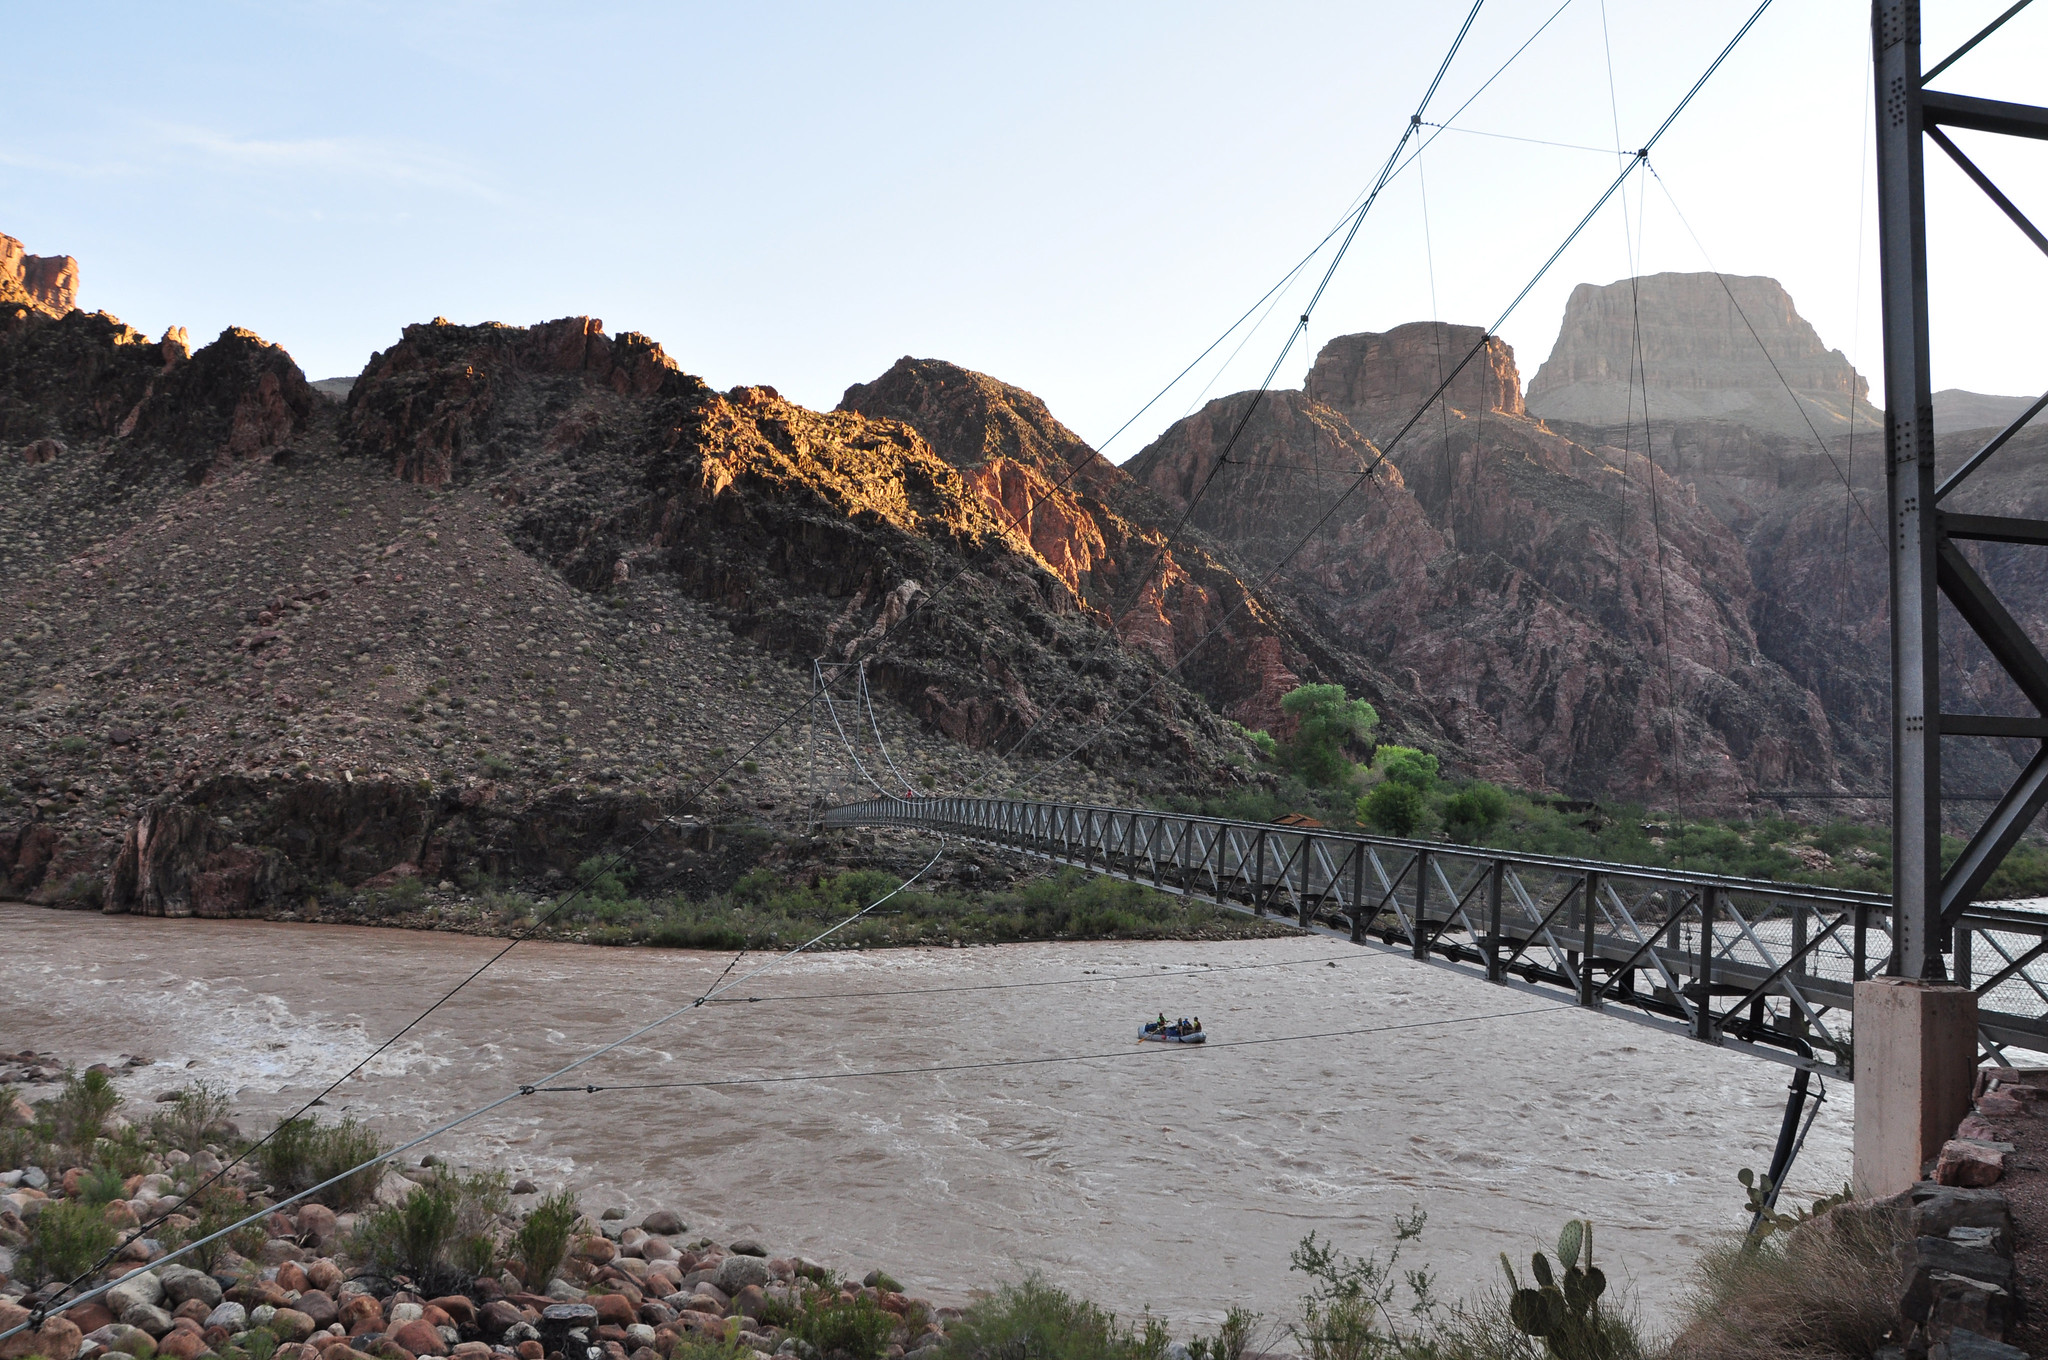 Boaters on the Colorado River pass under the Silver Bridge while getting an early start on their day's journey. NPS Photo by Erin Whittaker.